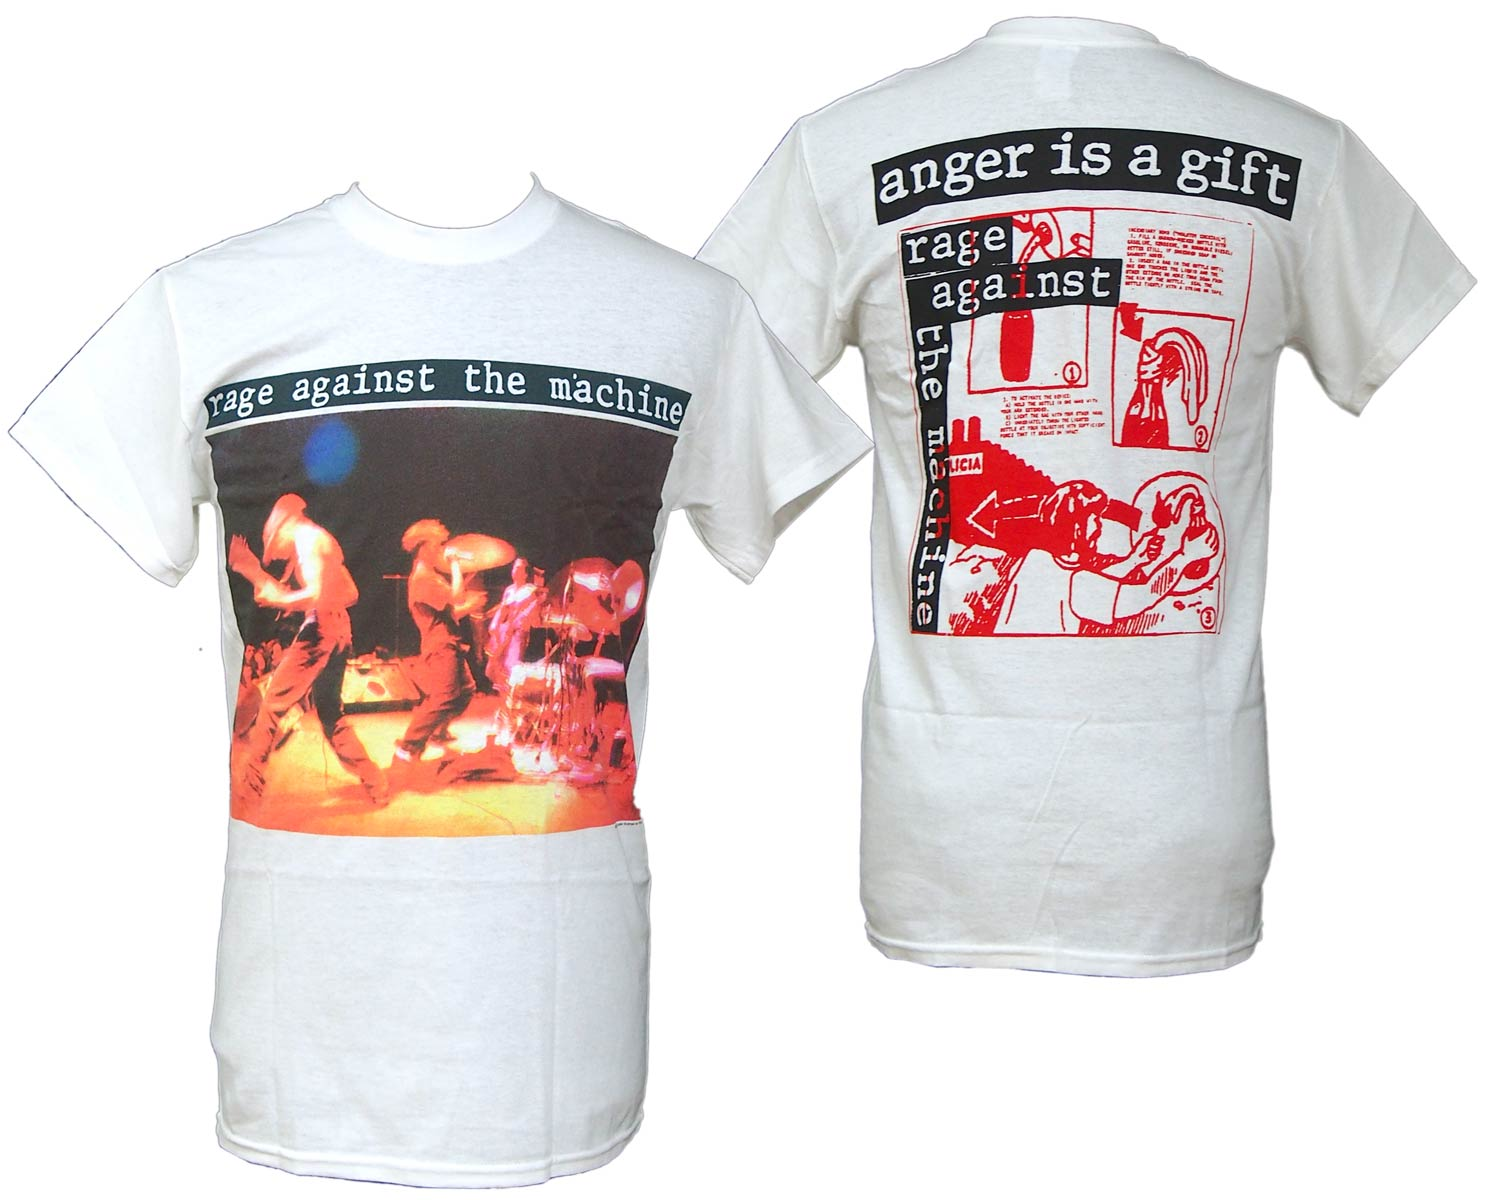 RAGE AGAINST THE MACHINE レイジ アゲインスト ザ マシーン ANGER GIFT Tシャツ オフィシャル